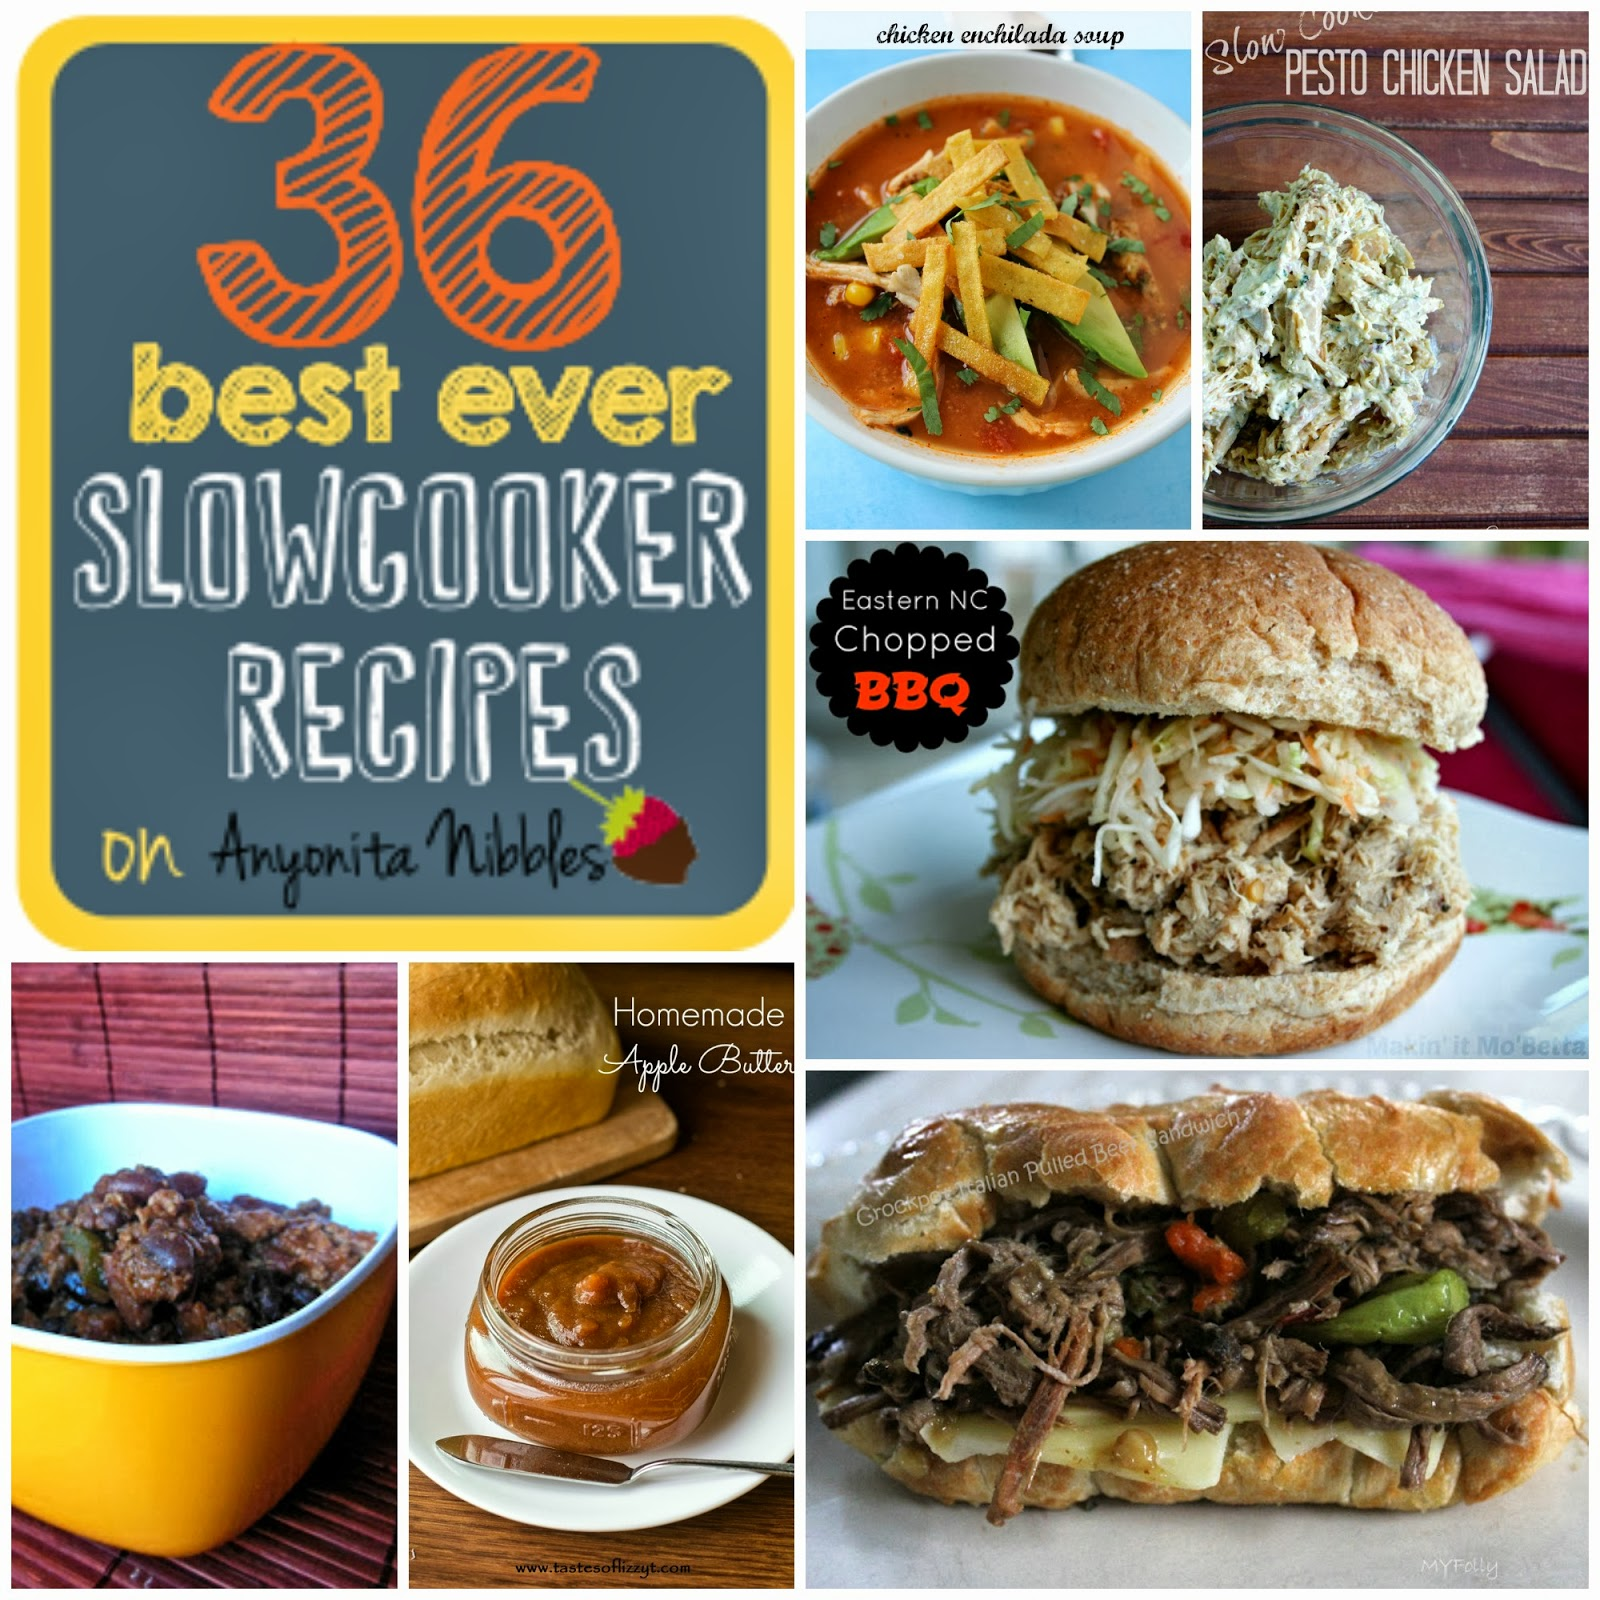 36 Best Ever Slowcooker Recipes Collage